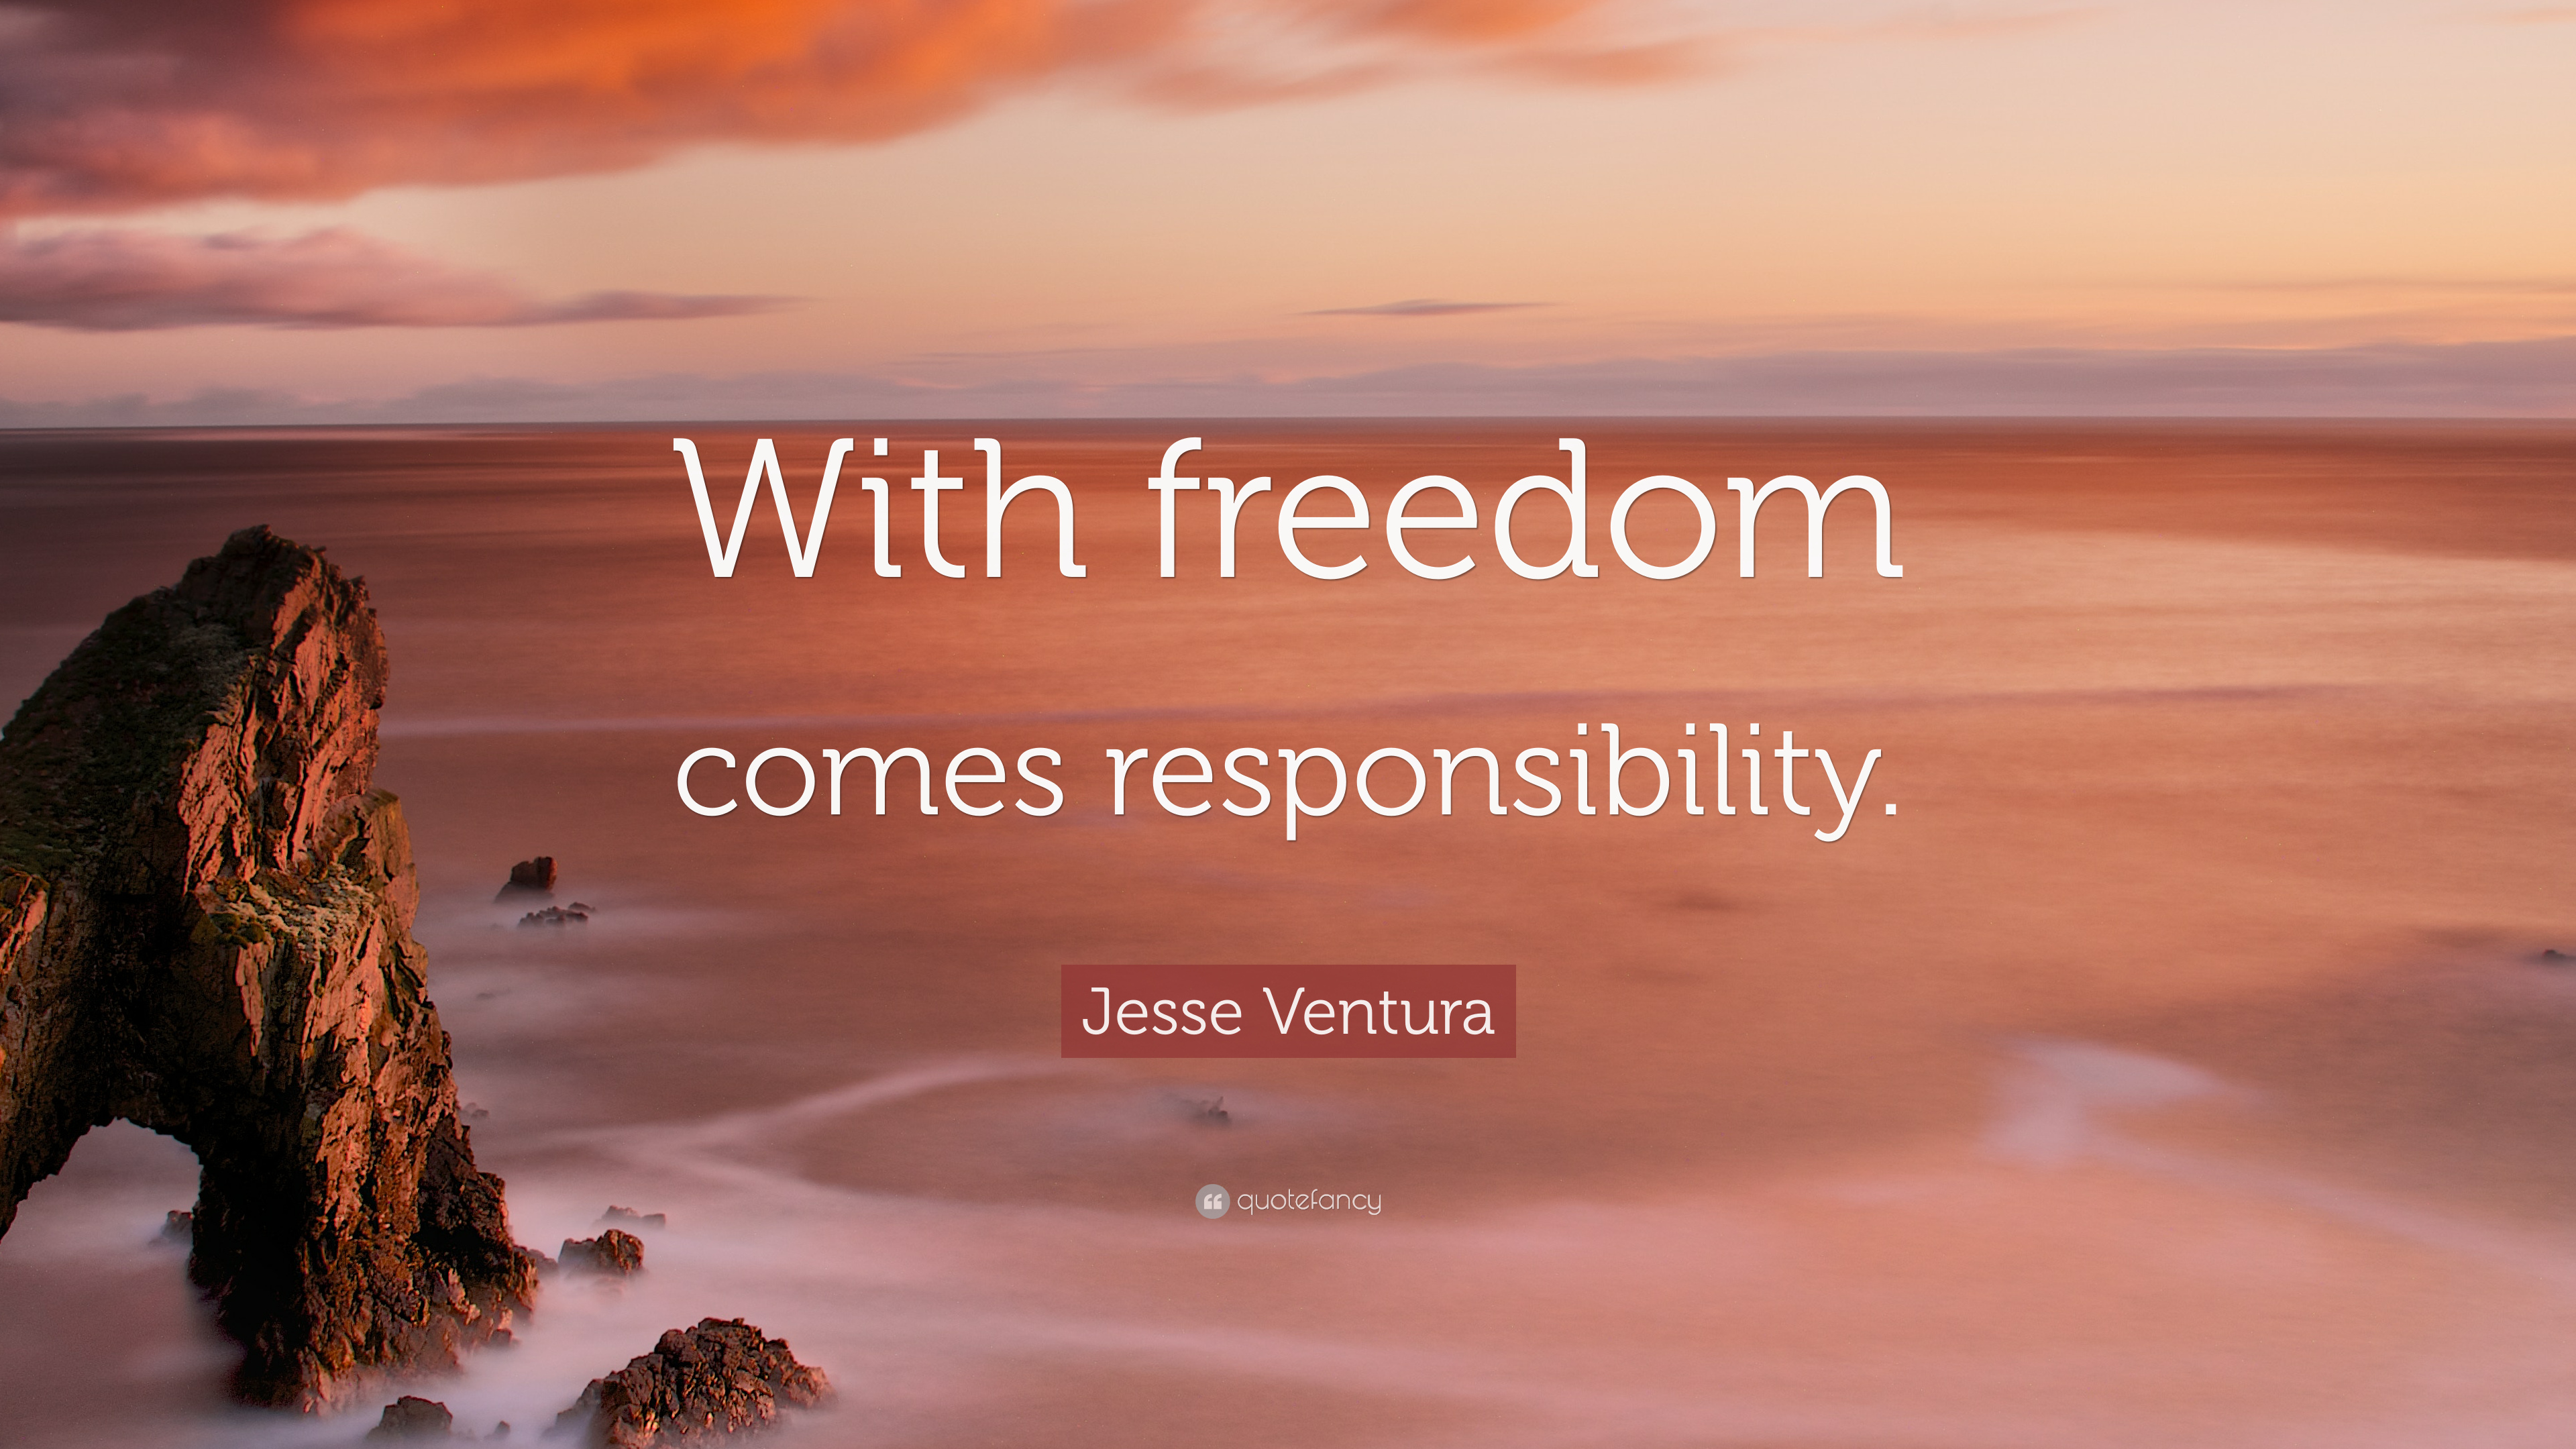 """Jesse Ventura Quote: """"With freedom comes responsibility."""" (9 wallpapers) -  Quotefancy"""